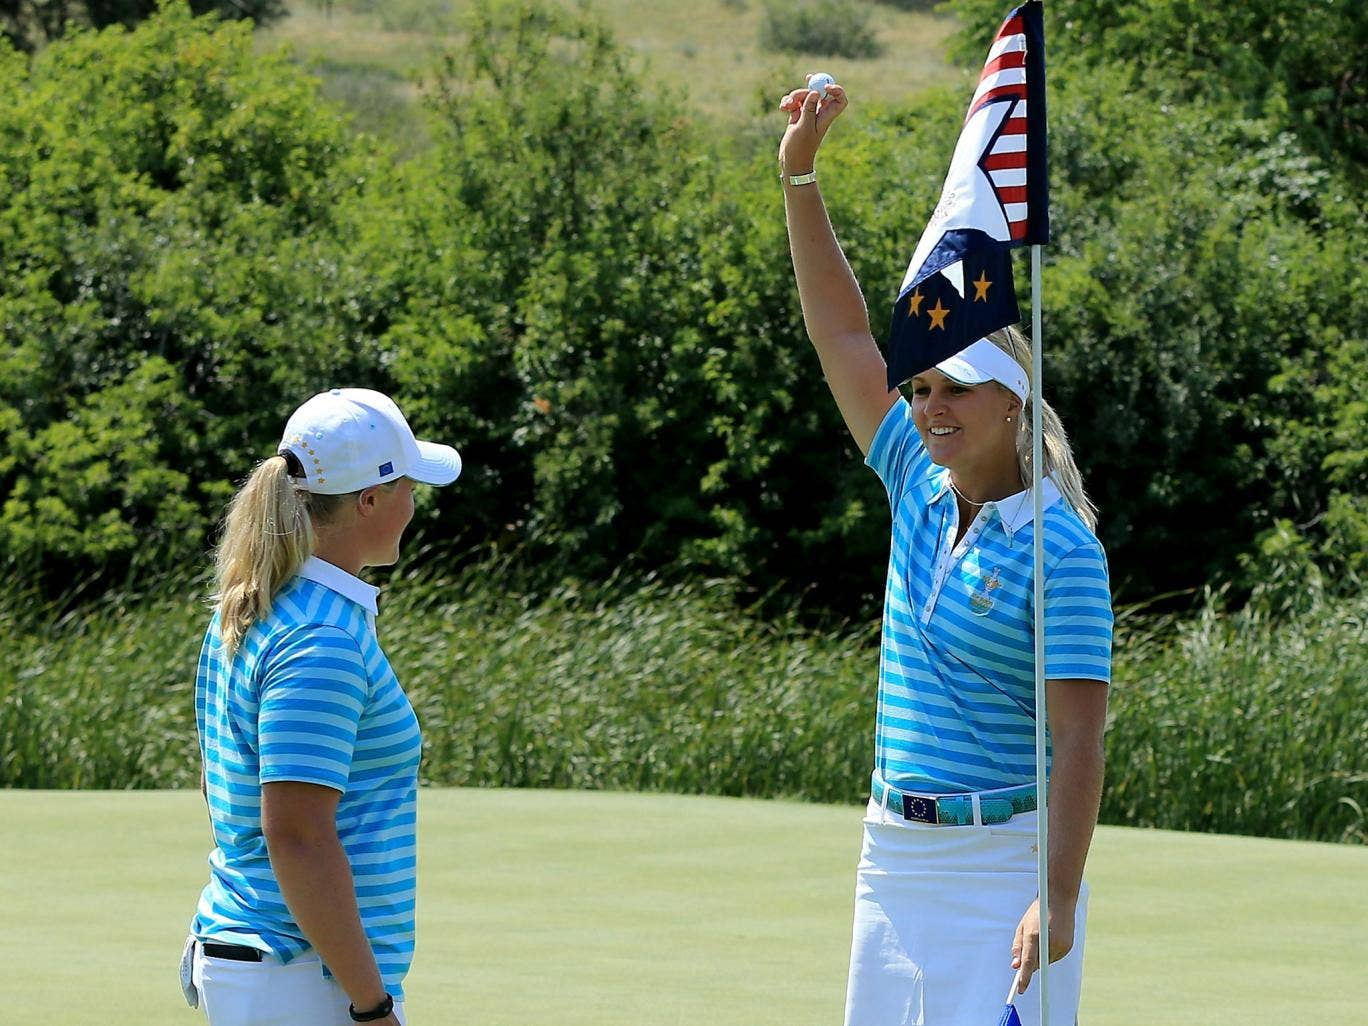 That's ace: Anna Nordqvist, right, celebrates her hole-in-one with Caroline Hedwall, left